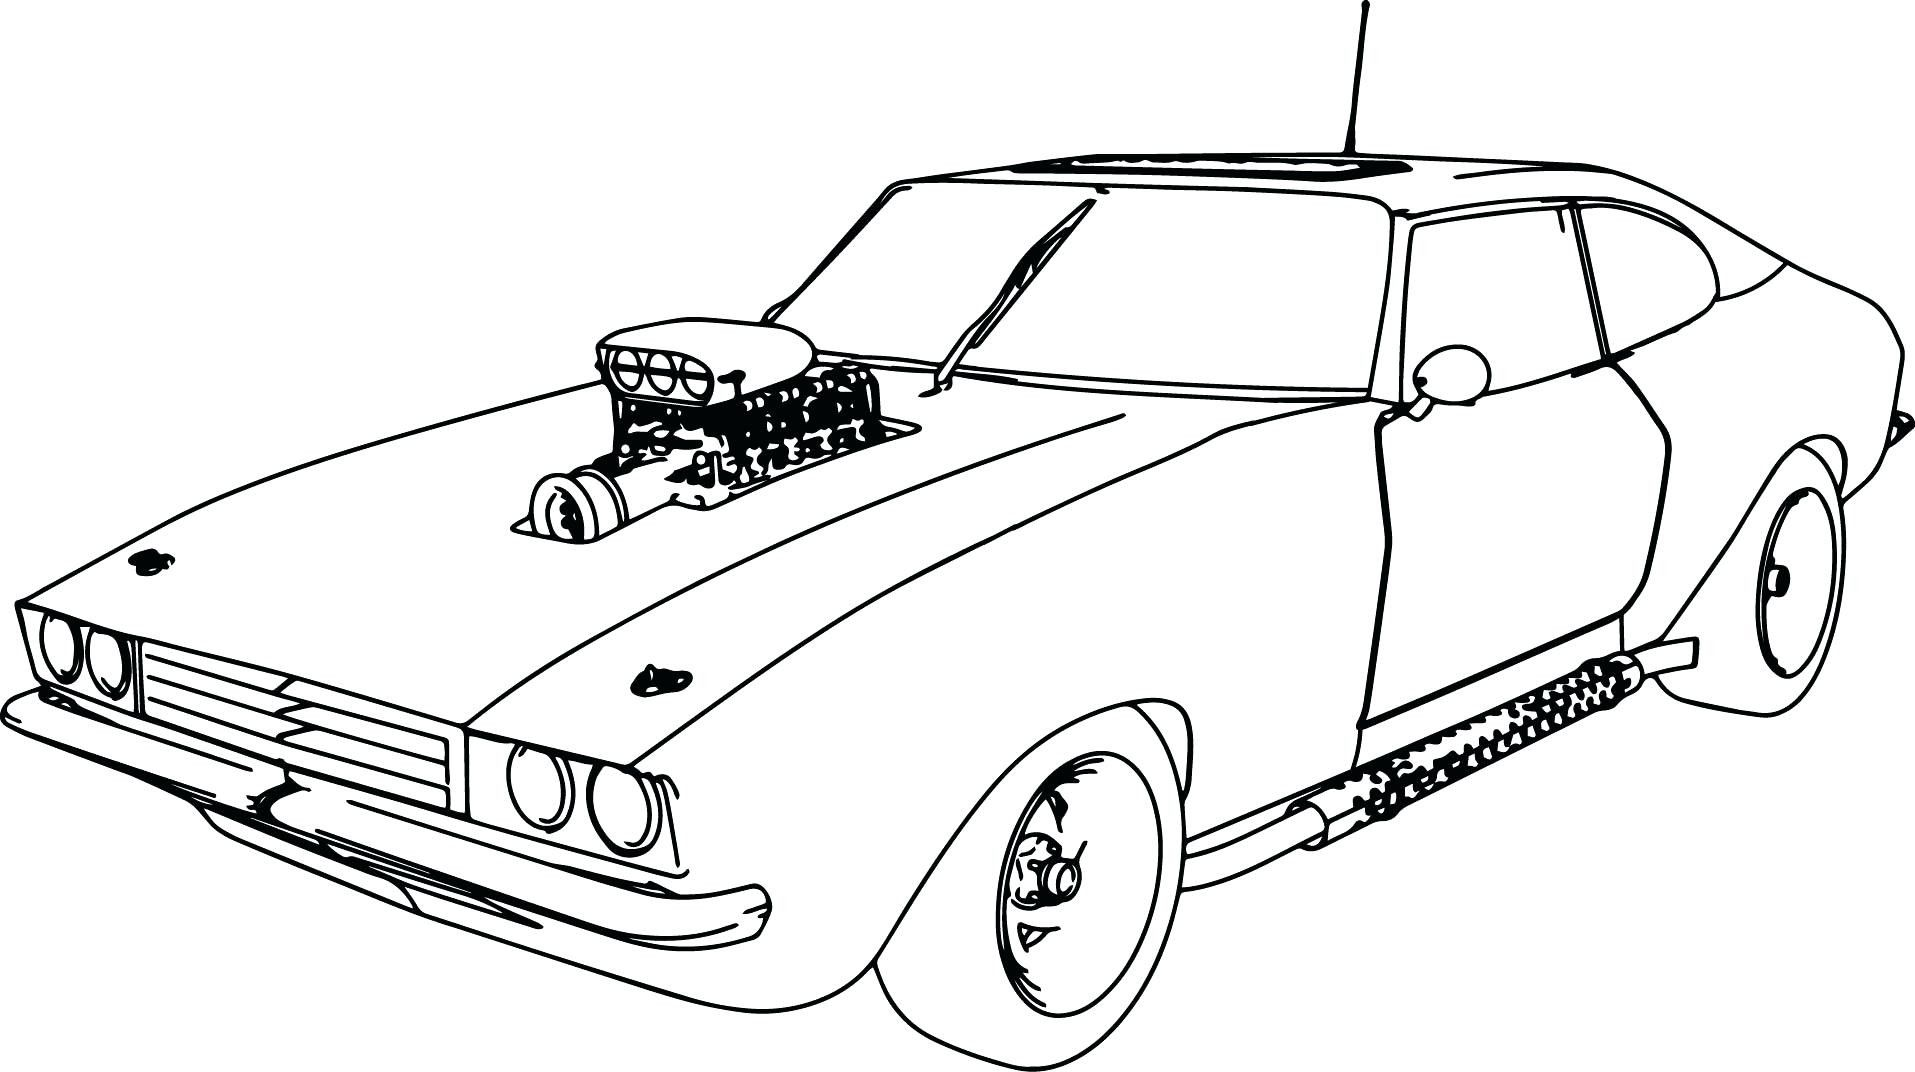 - Car Coloring Pages Cars For Kids Muscles With #AdultColoringPages